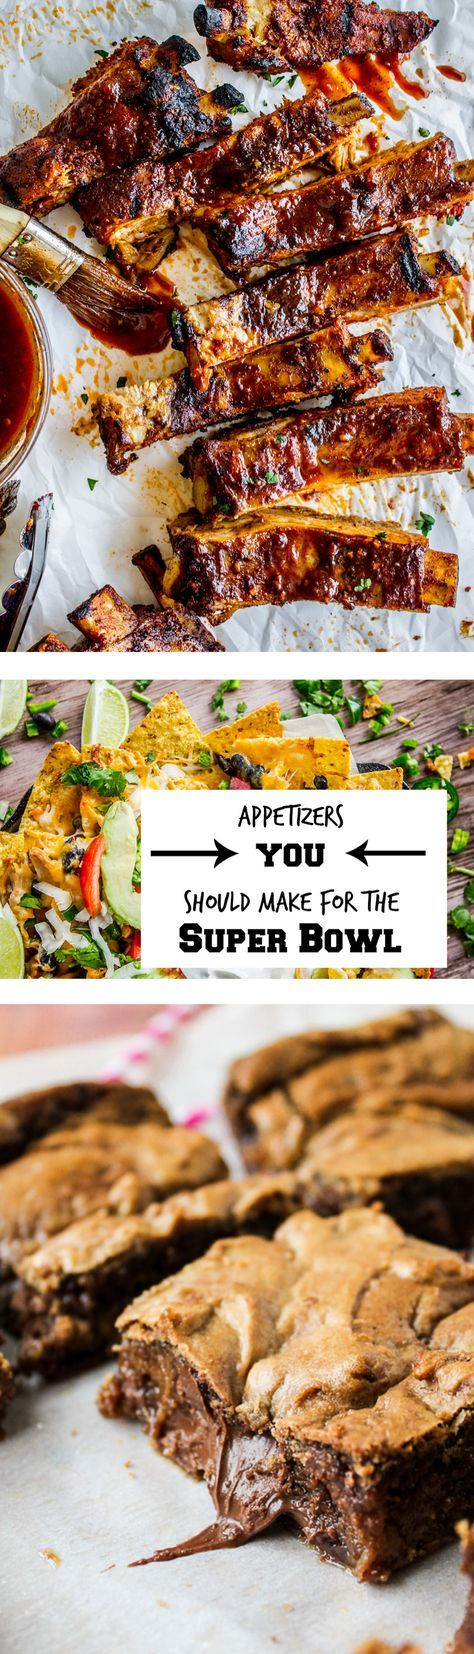 Super Bowl Appetizers and Desserts from The Food Charlatan. All the appetizer and party recipes you need to have an awesome time at the Super Bowl this weekend! Tons of appetizer, dessert, slow cooker, and carb-y cheesy ideas. You know you want it!